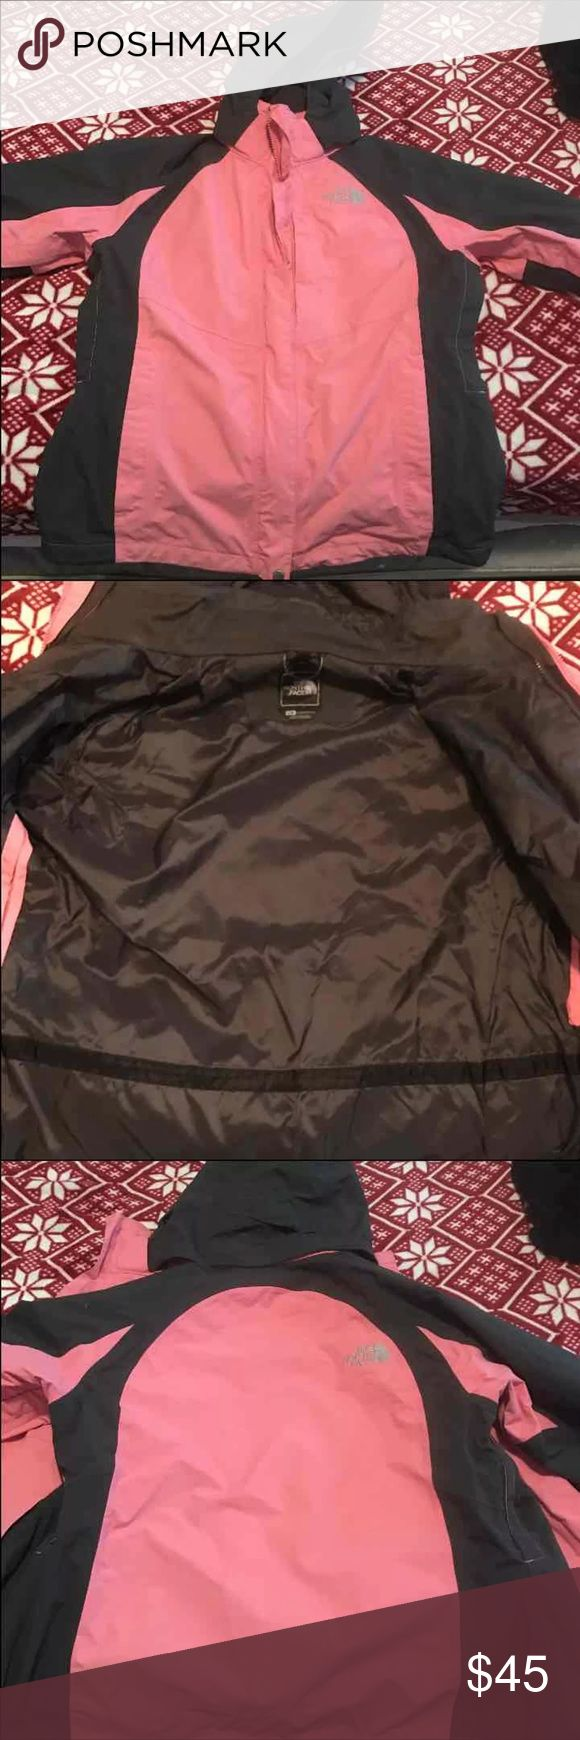 Women's north face jacket It is more heavier than a lot of rain jackets. It is in good condition. The only thing is a small mark on picture 4. It might be able to come off. Selling as it is. It is a dark gray and pink color. The North Face Jackets & Coats